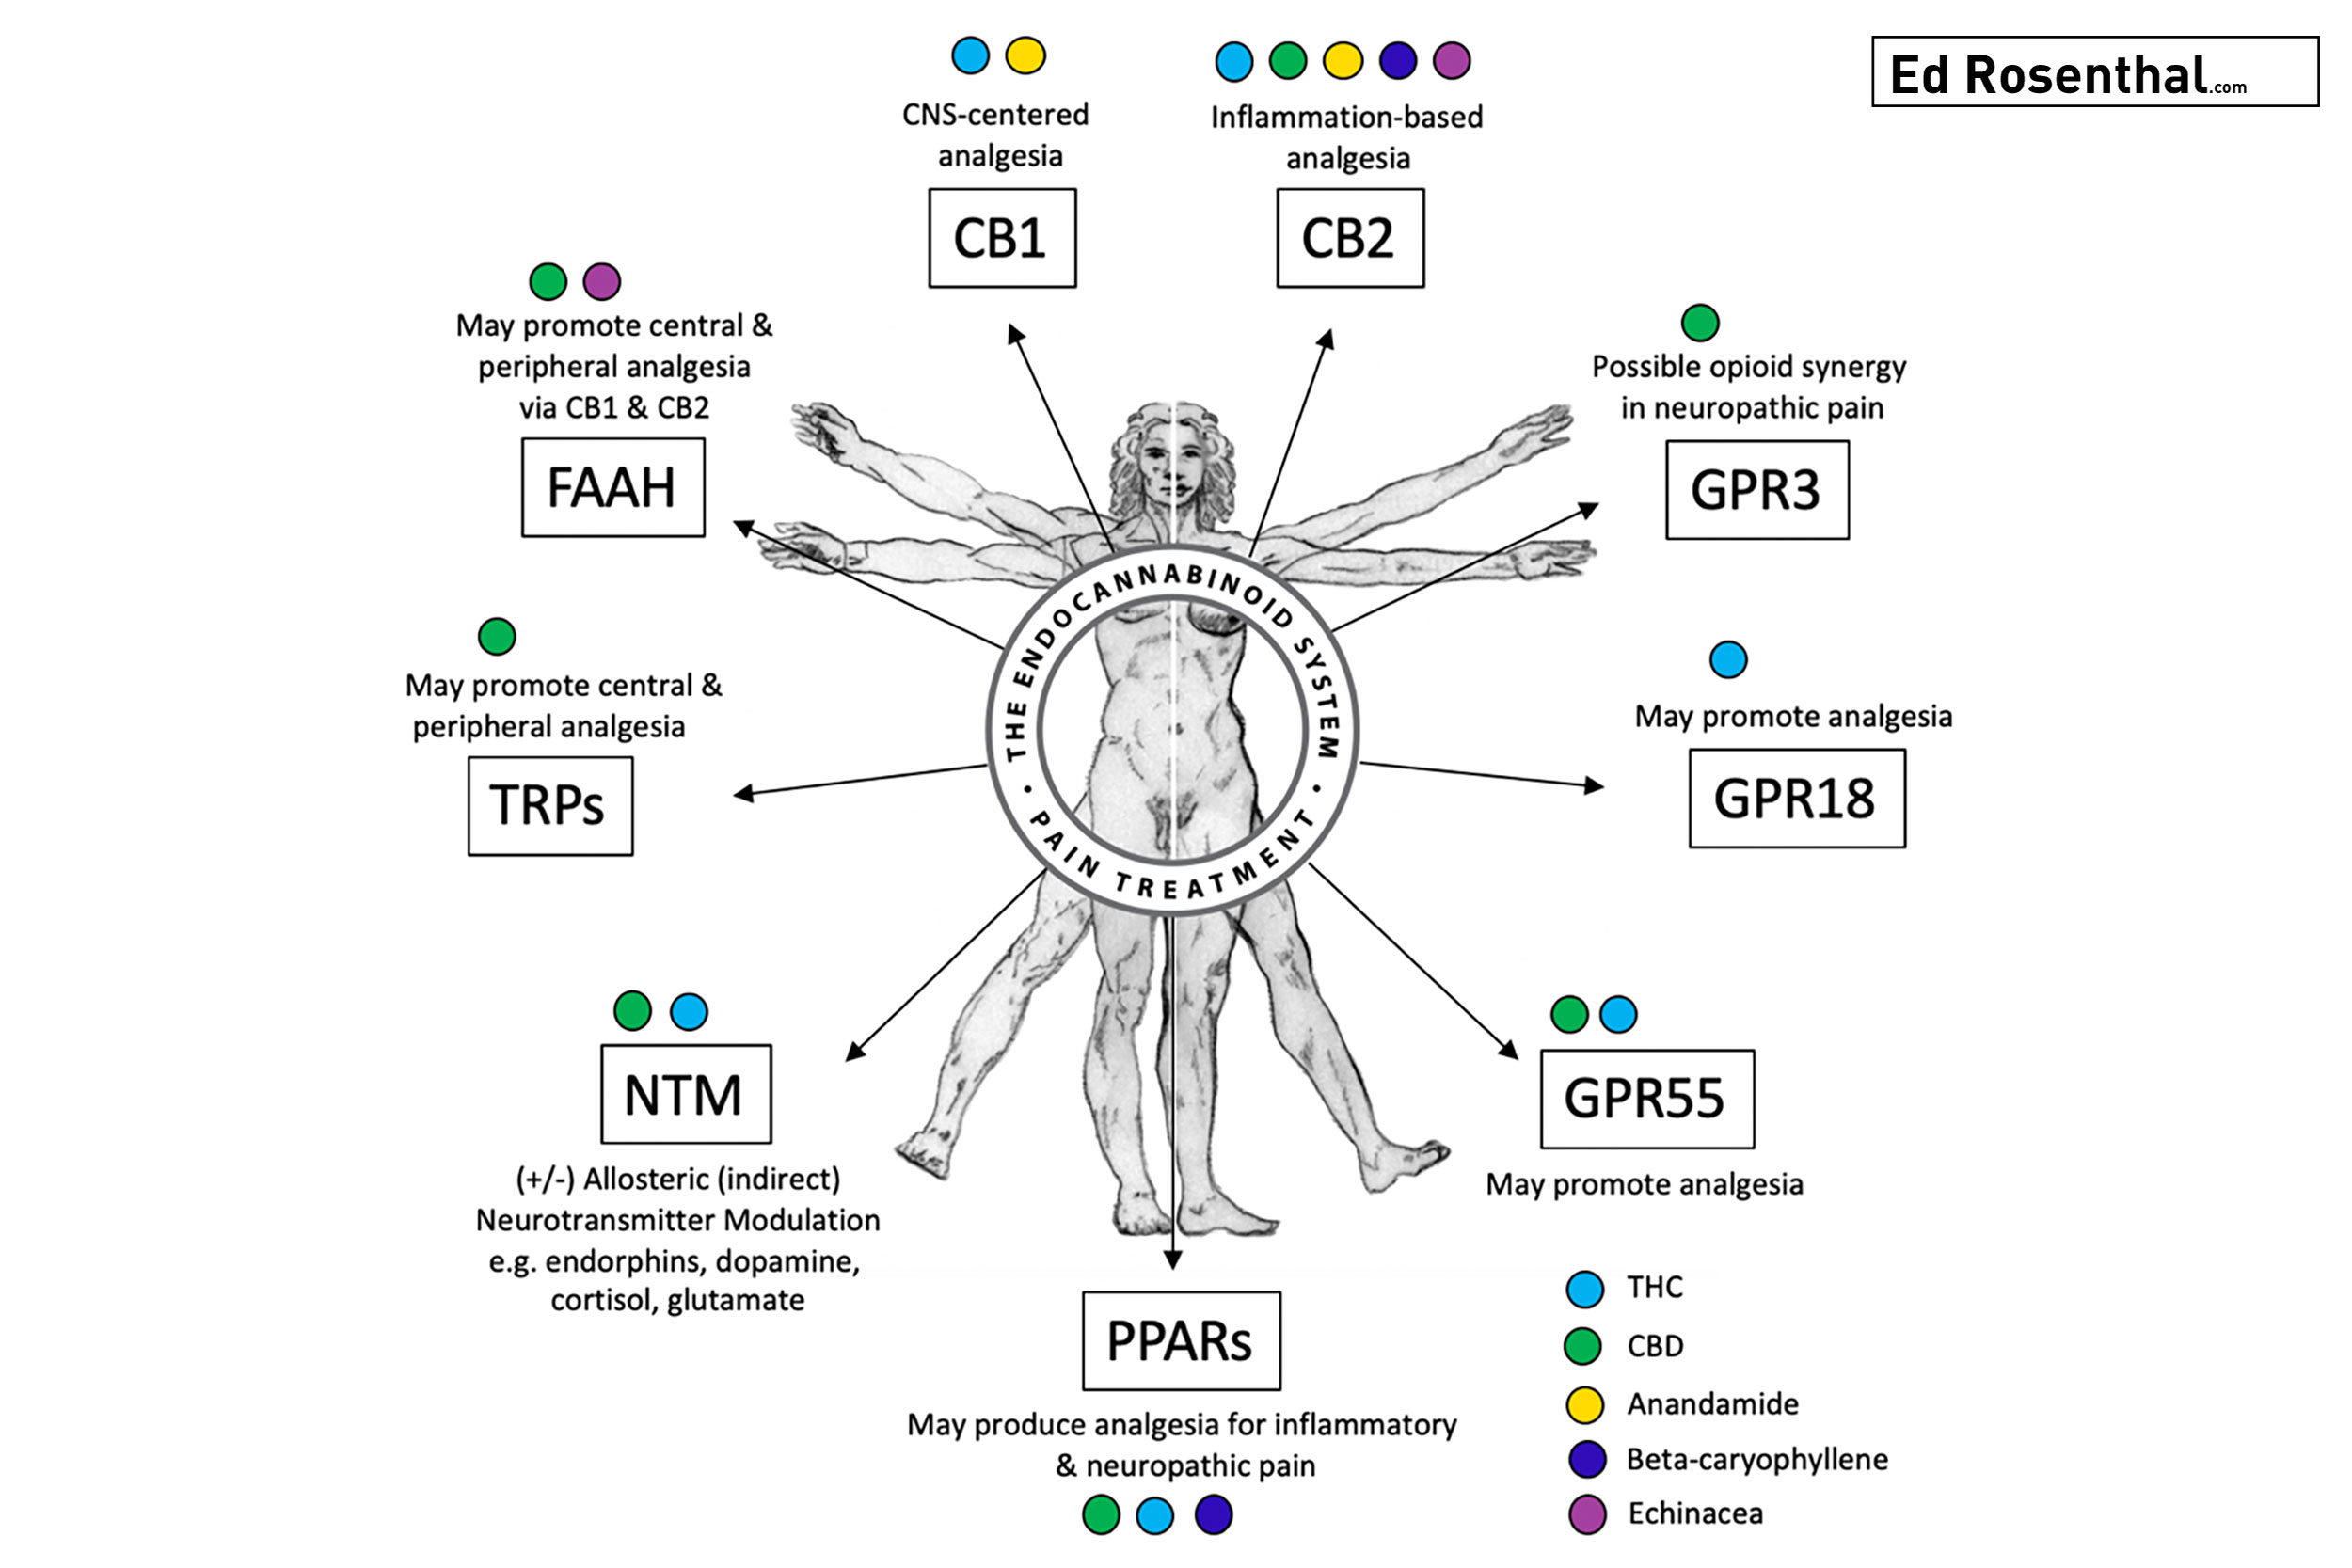 Endocannabinoid System Diagram:    The known pathways or mechanisms by which the endocannabinoid system produces analgesic effects in our body.